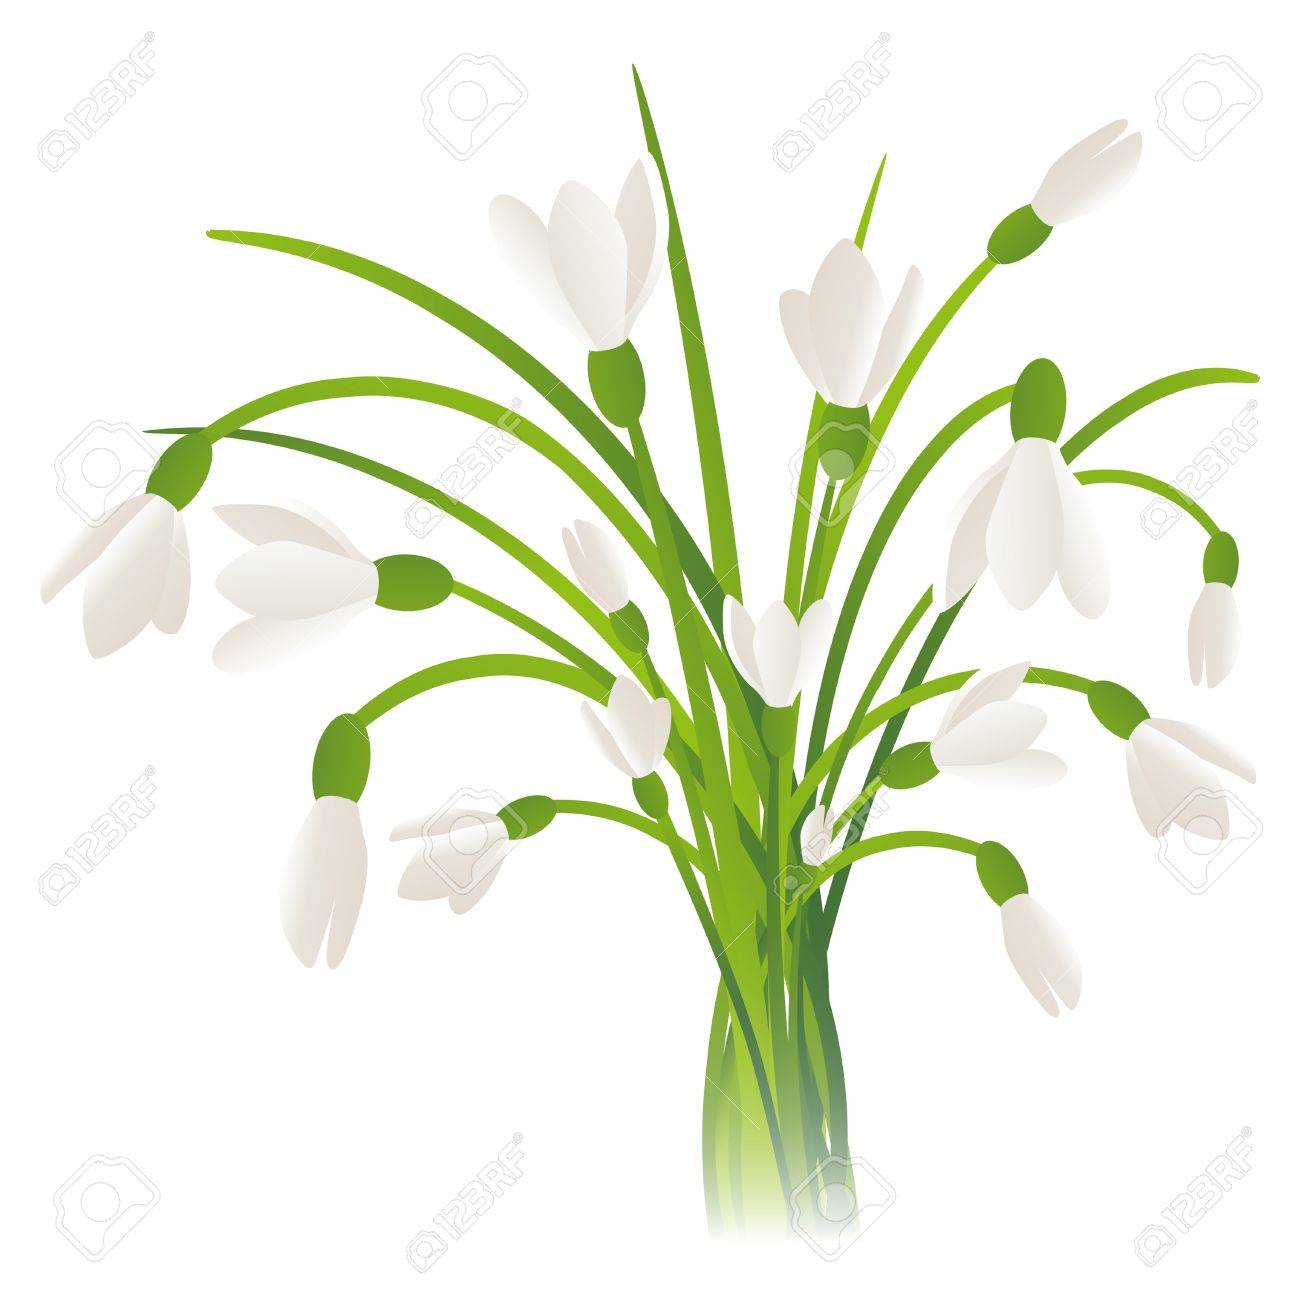 Illustration of the Snowdrop Flowers Over White Background Stock Vector - 17499496